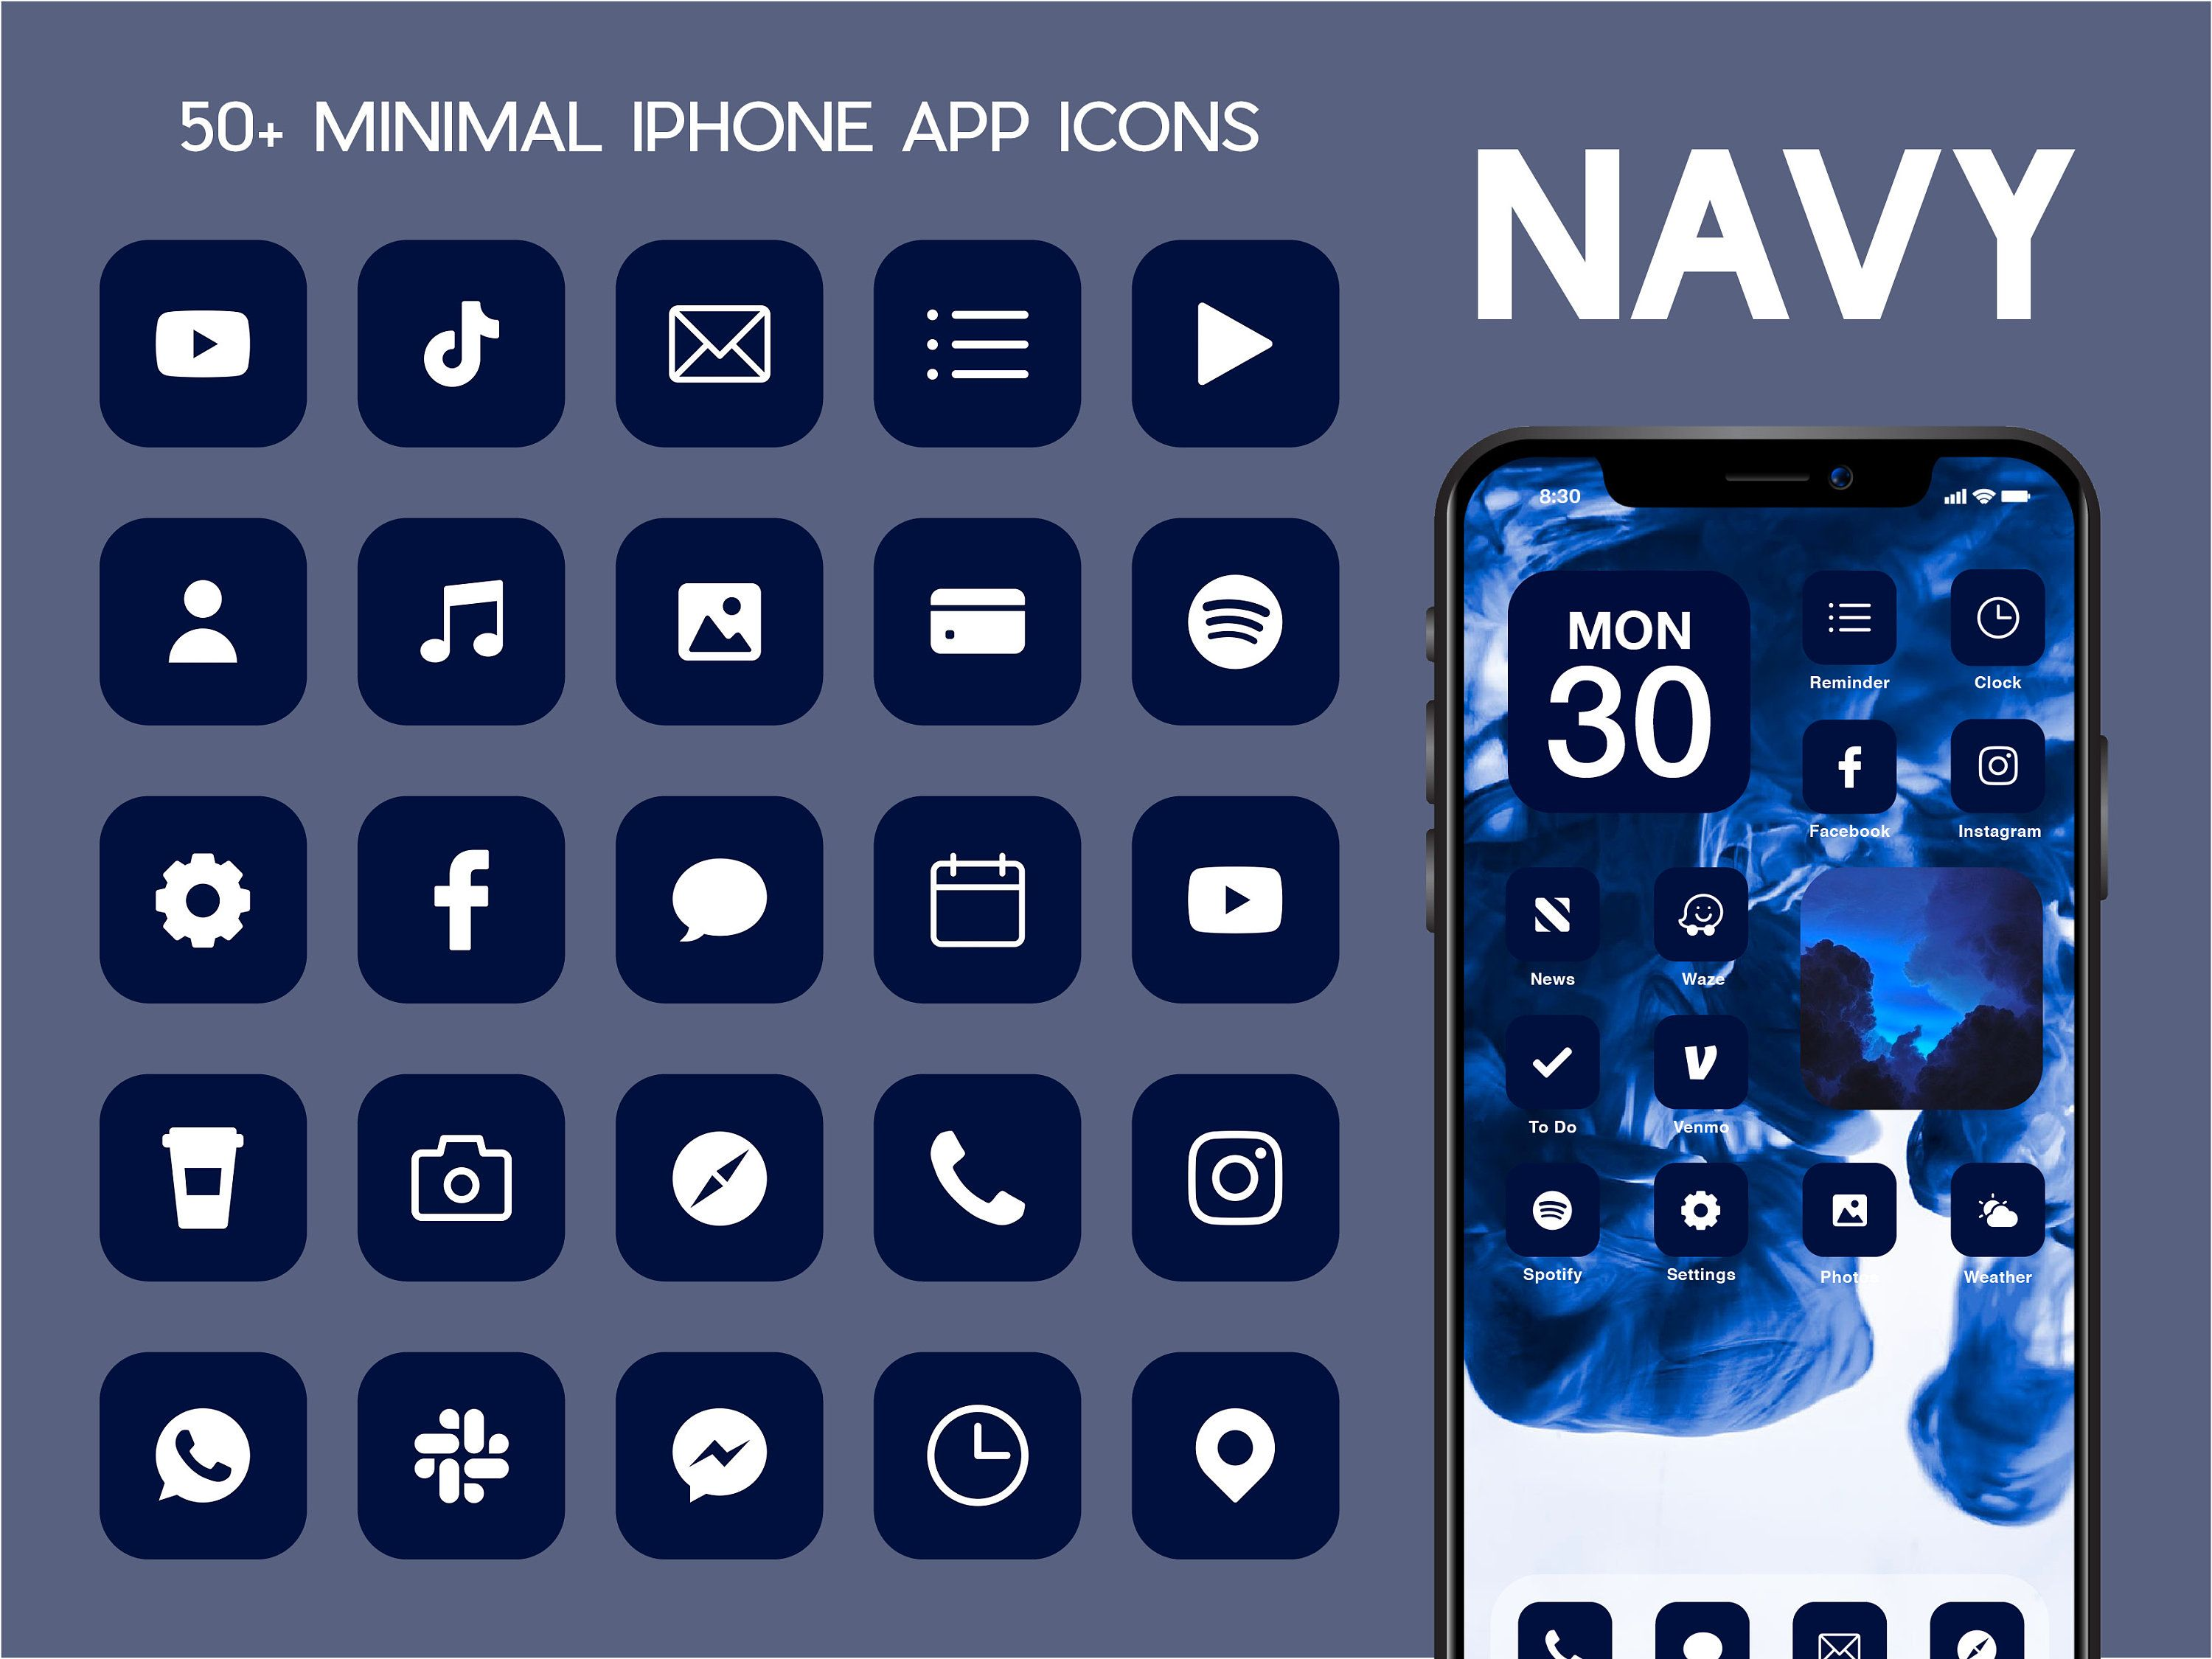 Ios Navy App Icons 100 Blue Minimal Ios 14 Modern Icon Pack In 2020 Ios App Icon App Icon Iphone App Layout